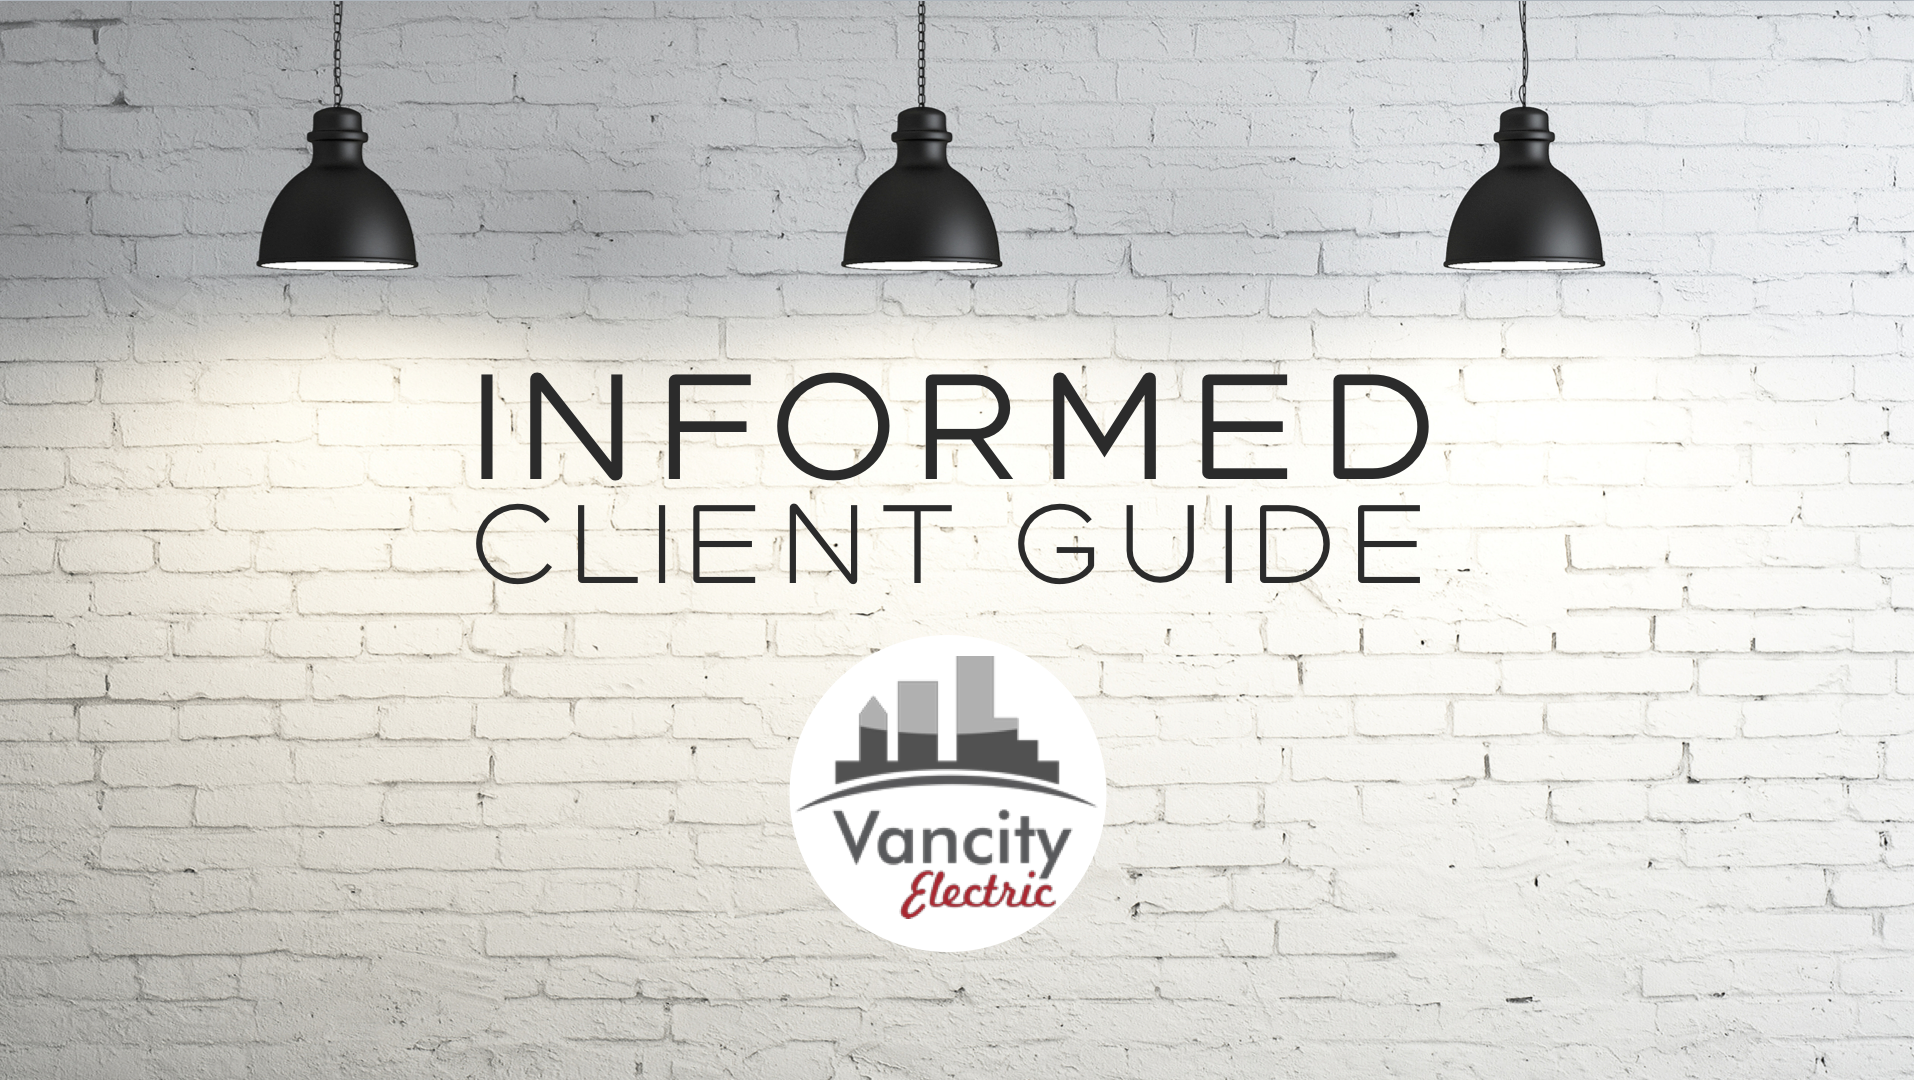 INFORMED CLIENT GUIDE COVER